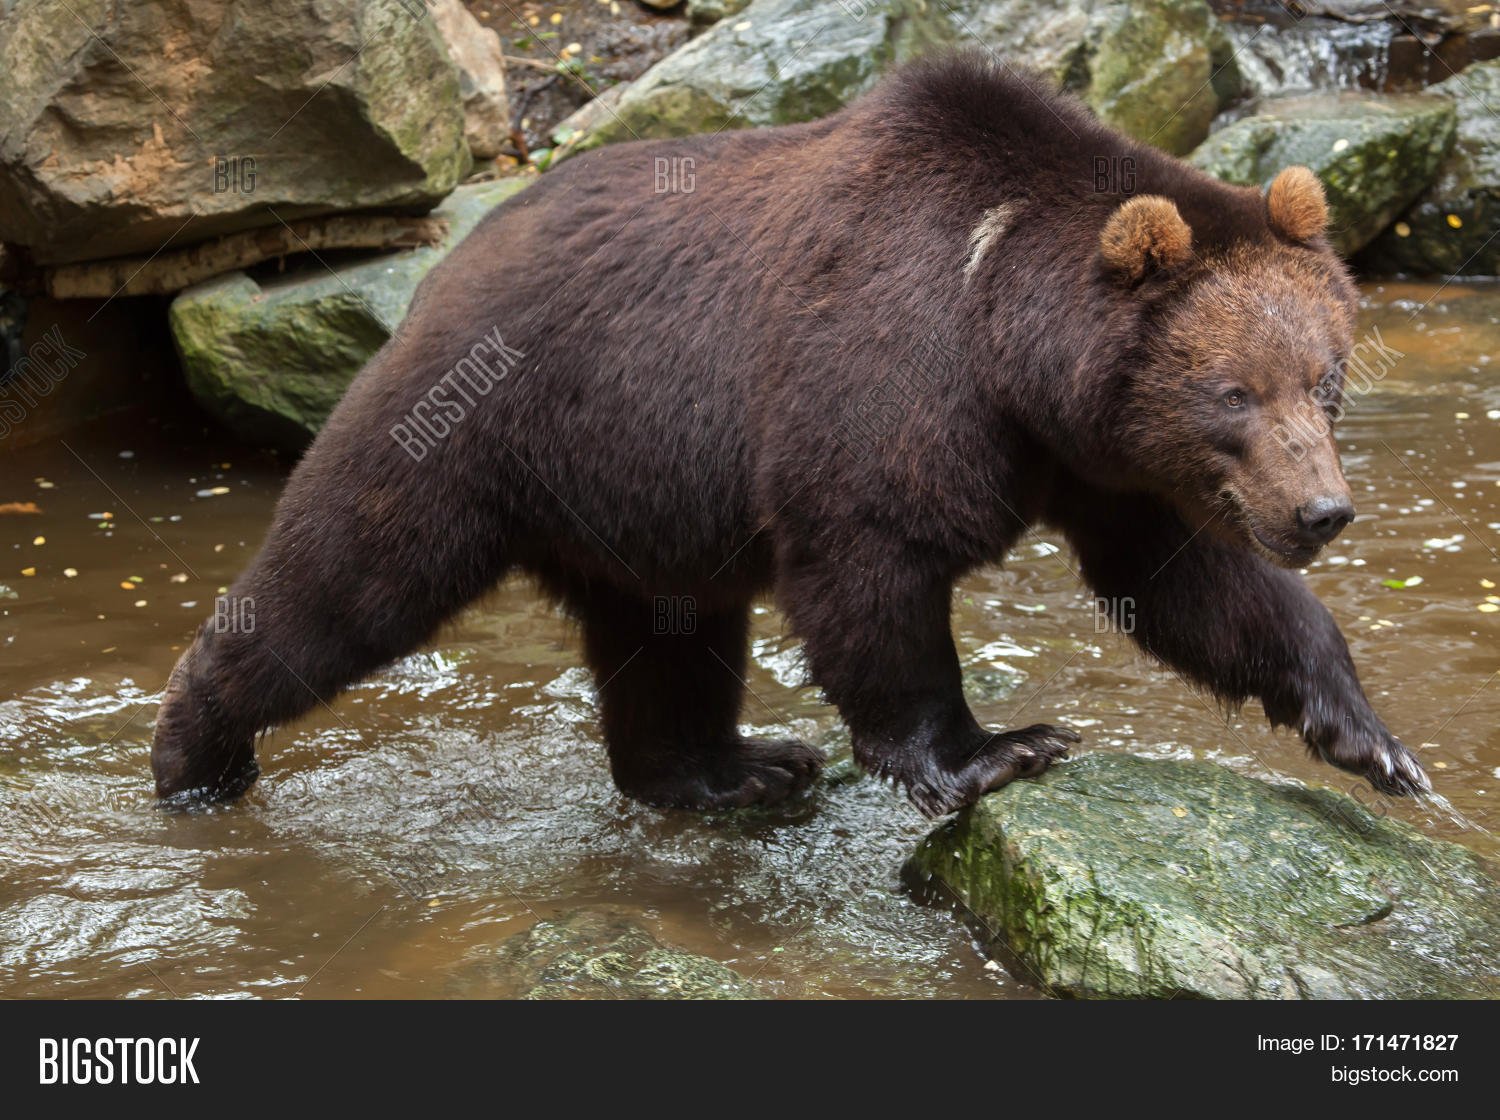 Images of Eastern Brown Bear | 1500x1120